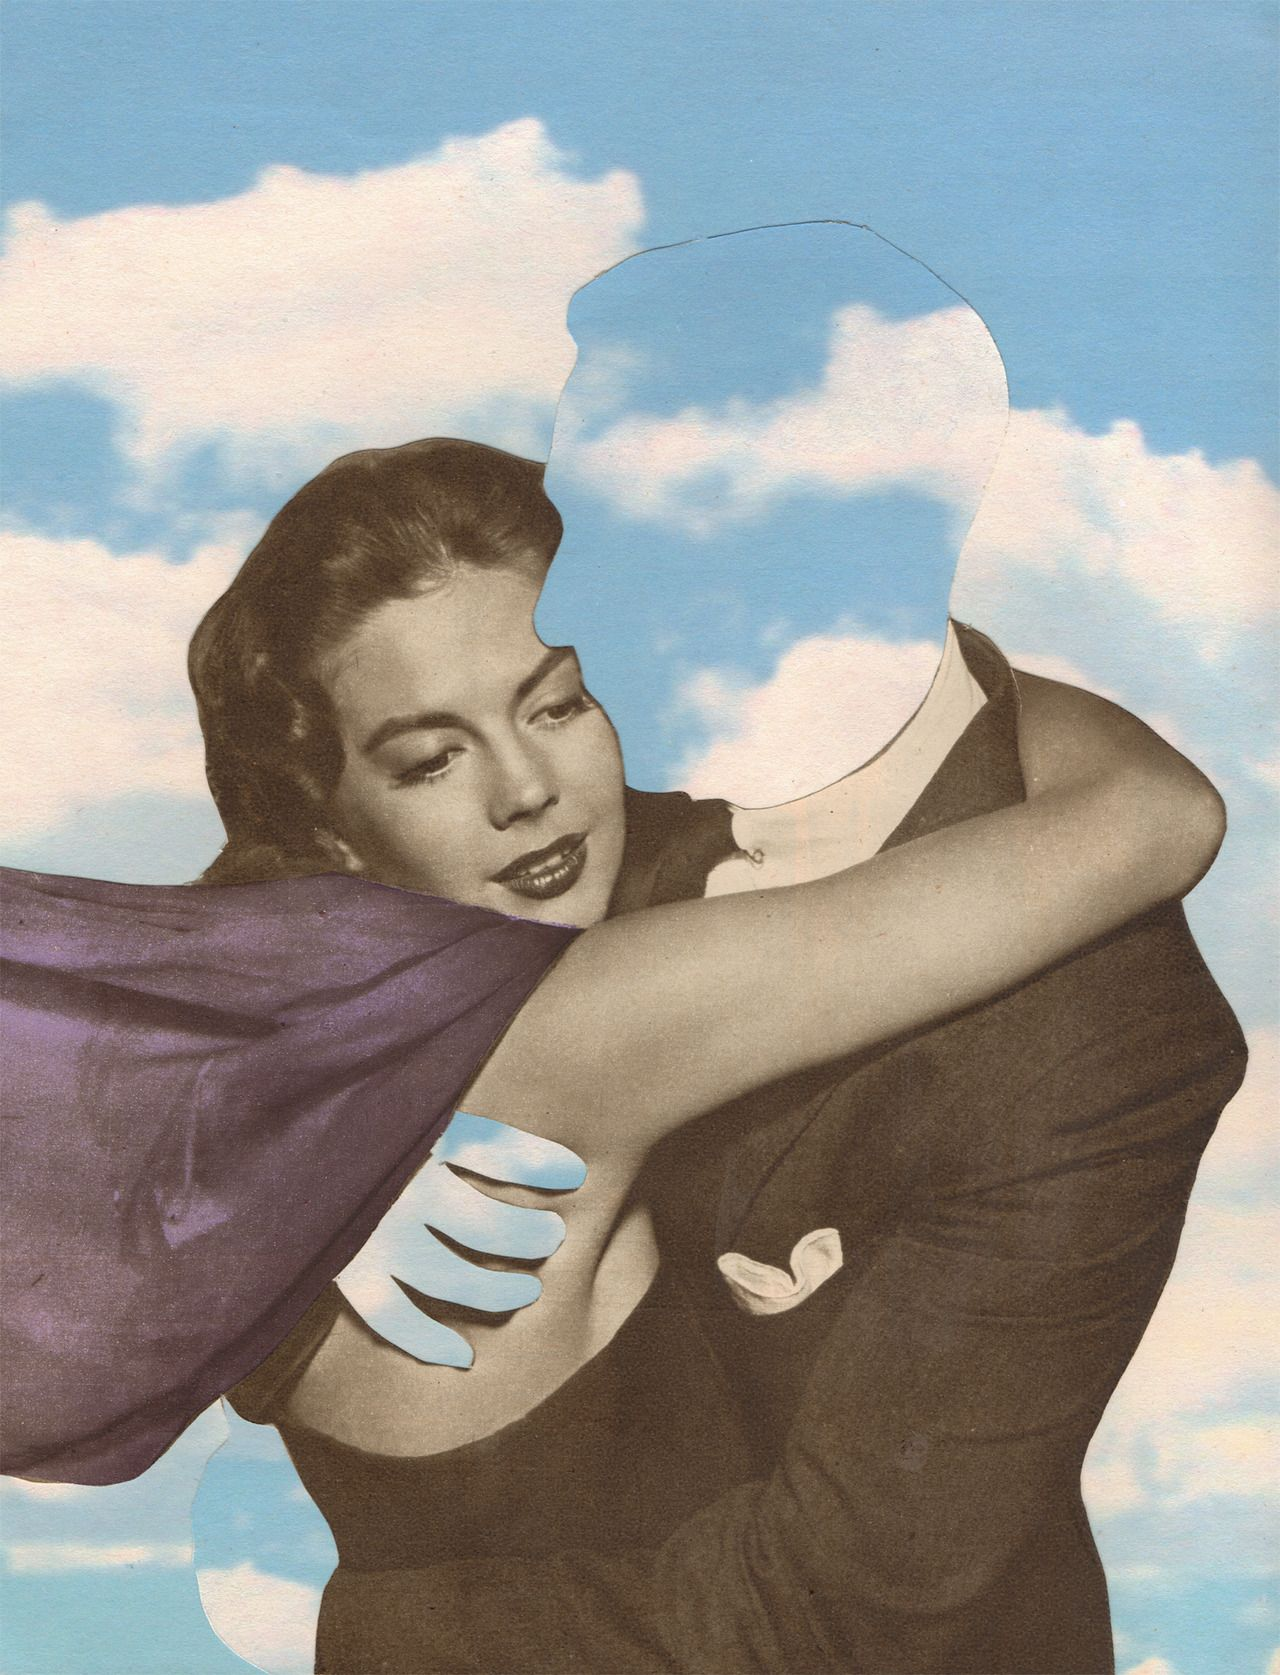 Joe Webb - collage artist | Randoms that I Love | Pinterest ...